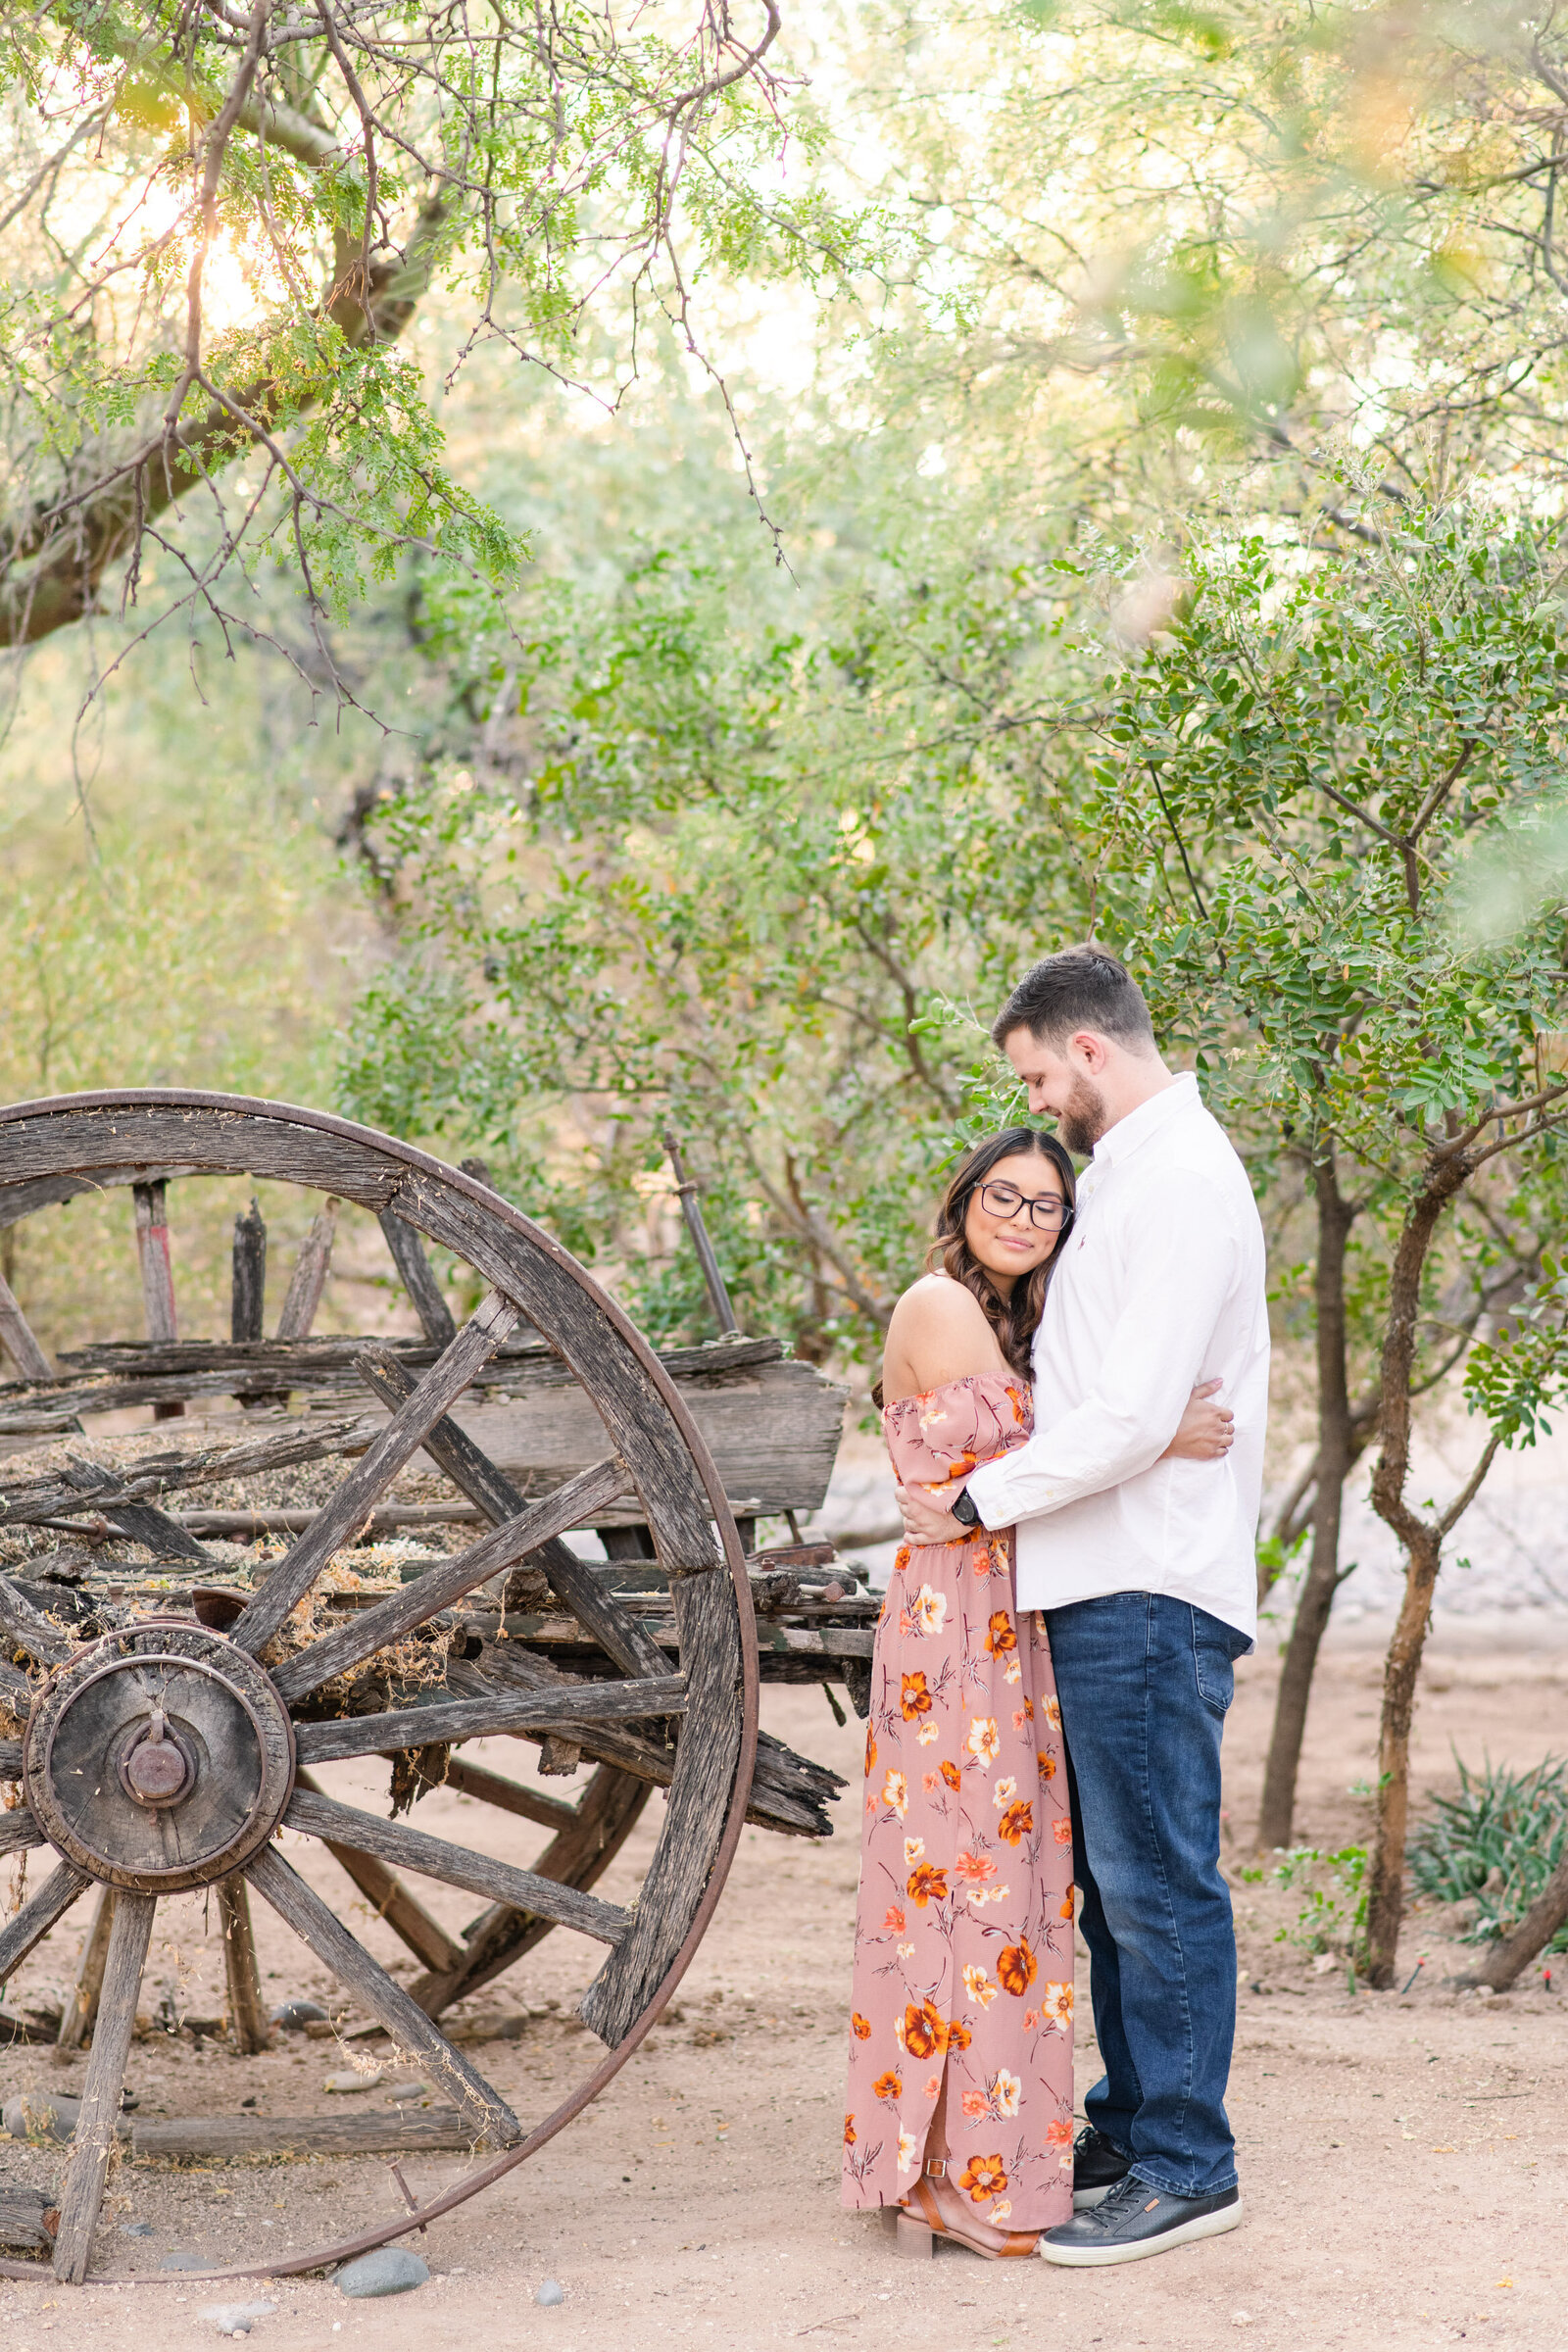 couple under mesquite tree by antique wagon wheel at Tucson estate